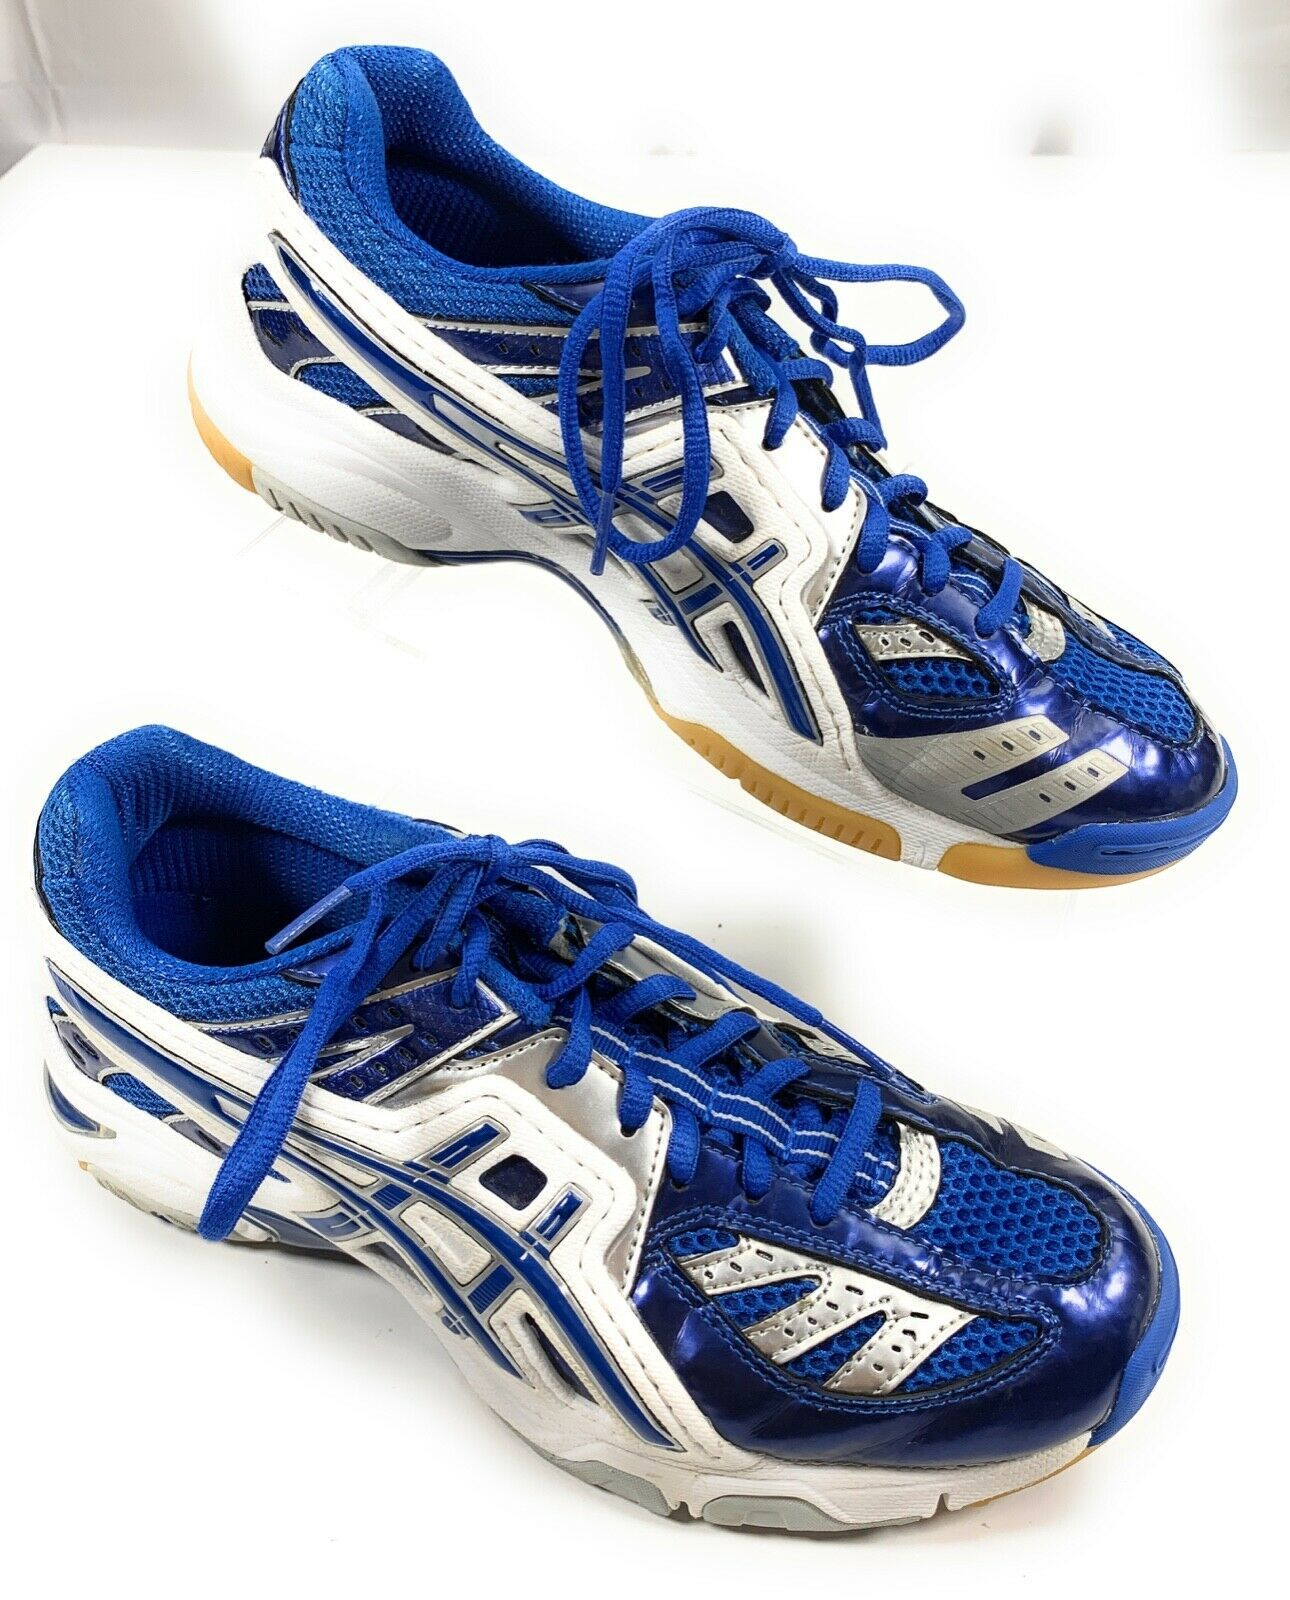 ASICS B055NGel VolleyLyte Volleyball Shoes Sneakers Women's 10 US